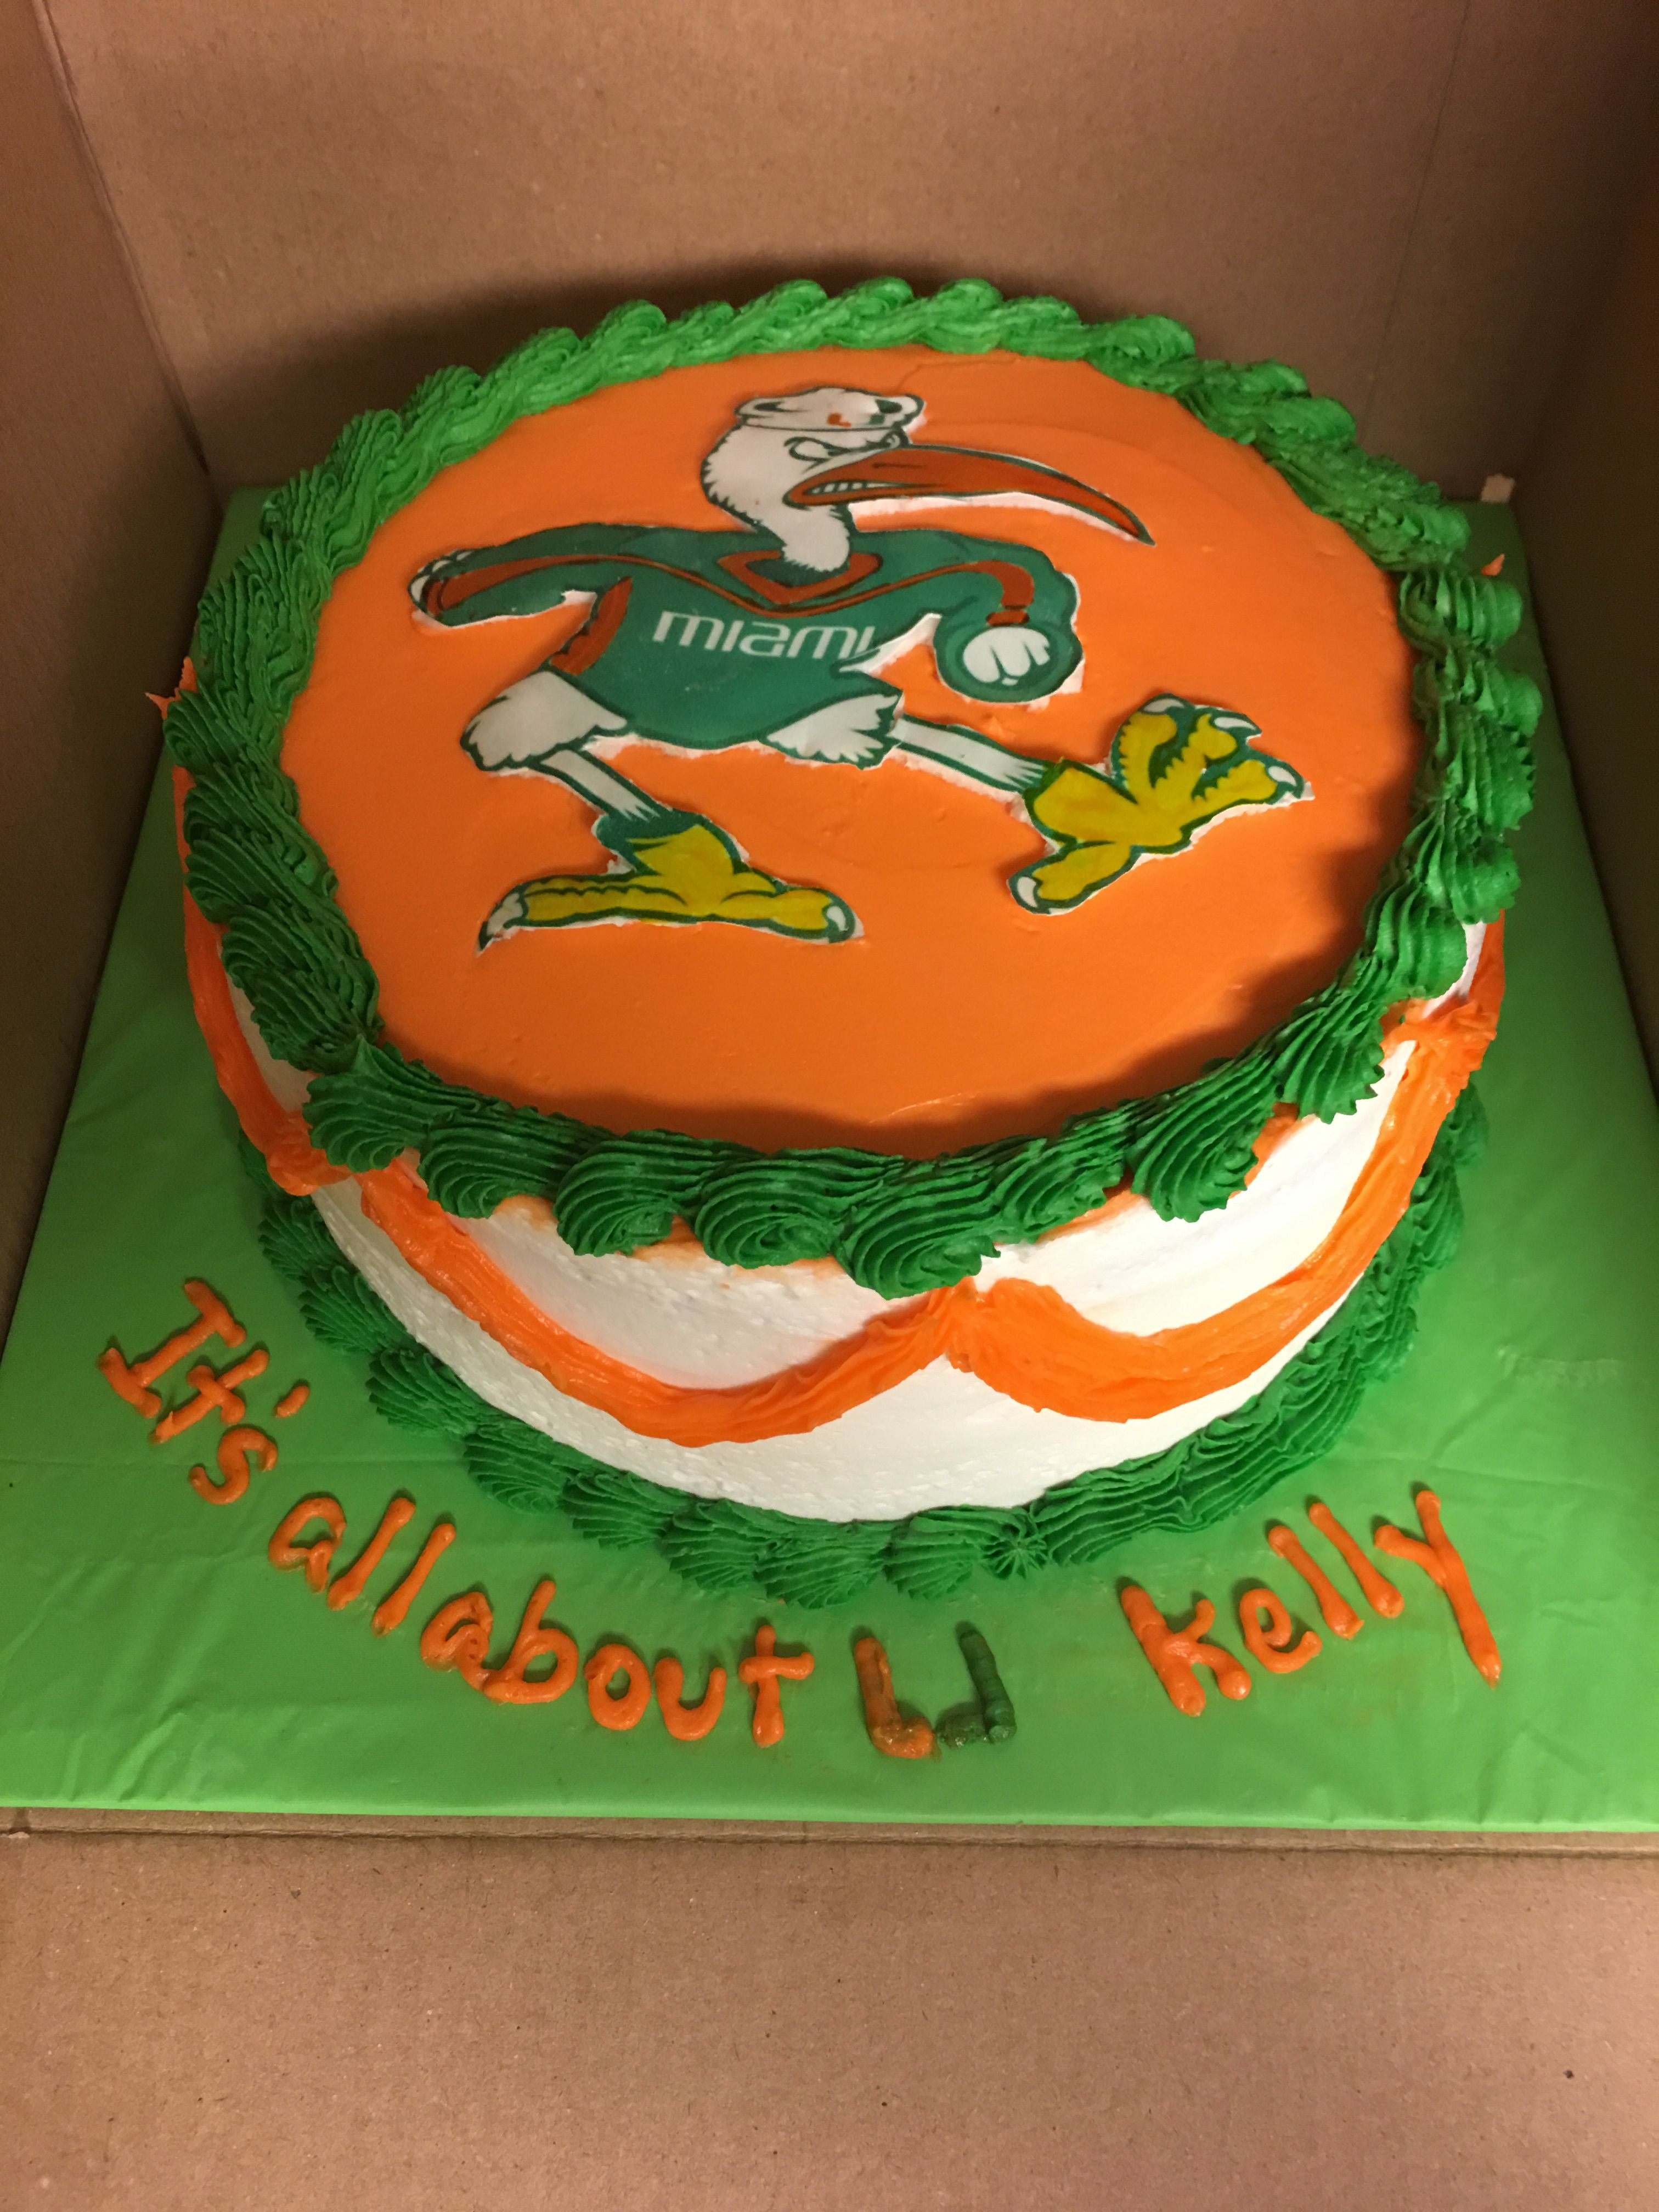 8 Round Miami Hurricanes Birthday Cake Image Is A Sugar Image With